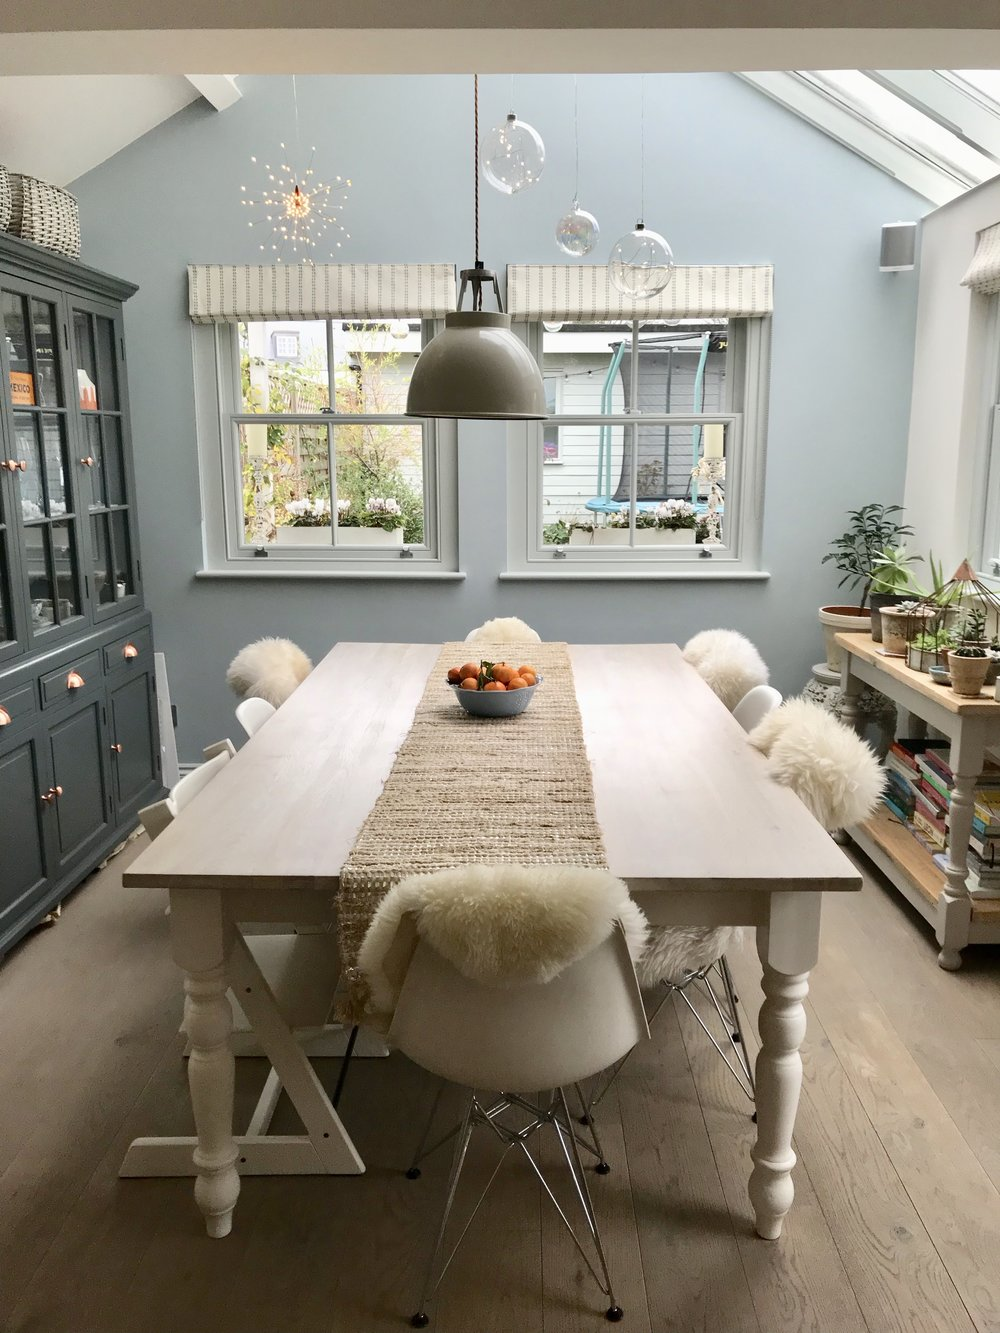 sheepskin kitchen.jpg